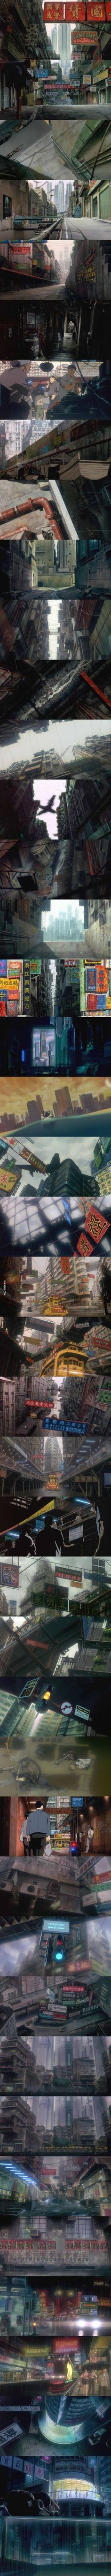 Ghost in the Shell (1995) has some of the most detailed and interesting backgrounds I've ever seen in an animated movie.